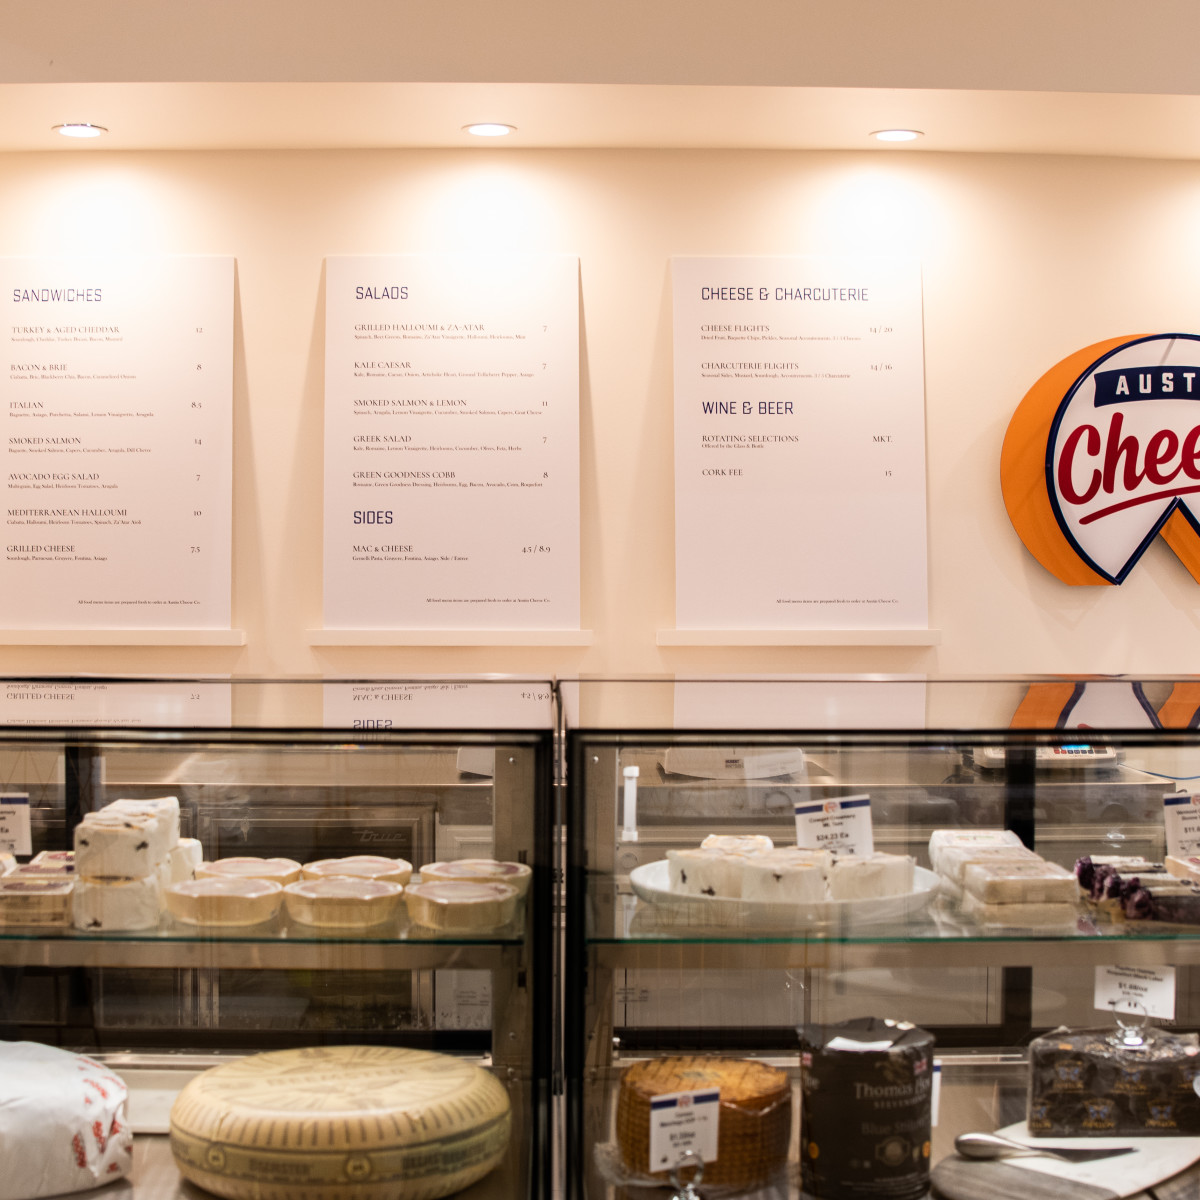 Austin Cheese Co. cases